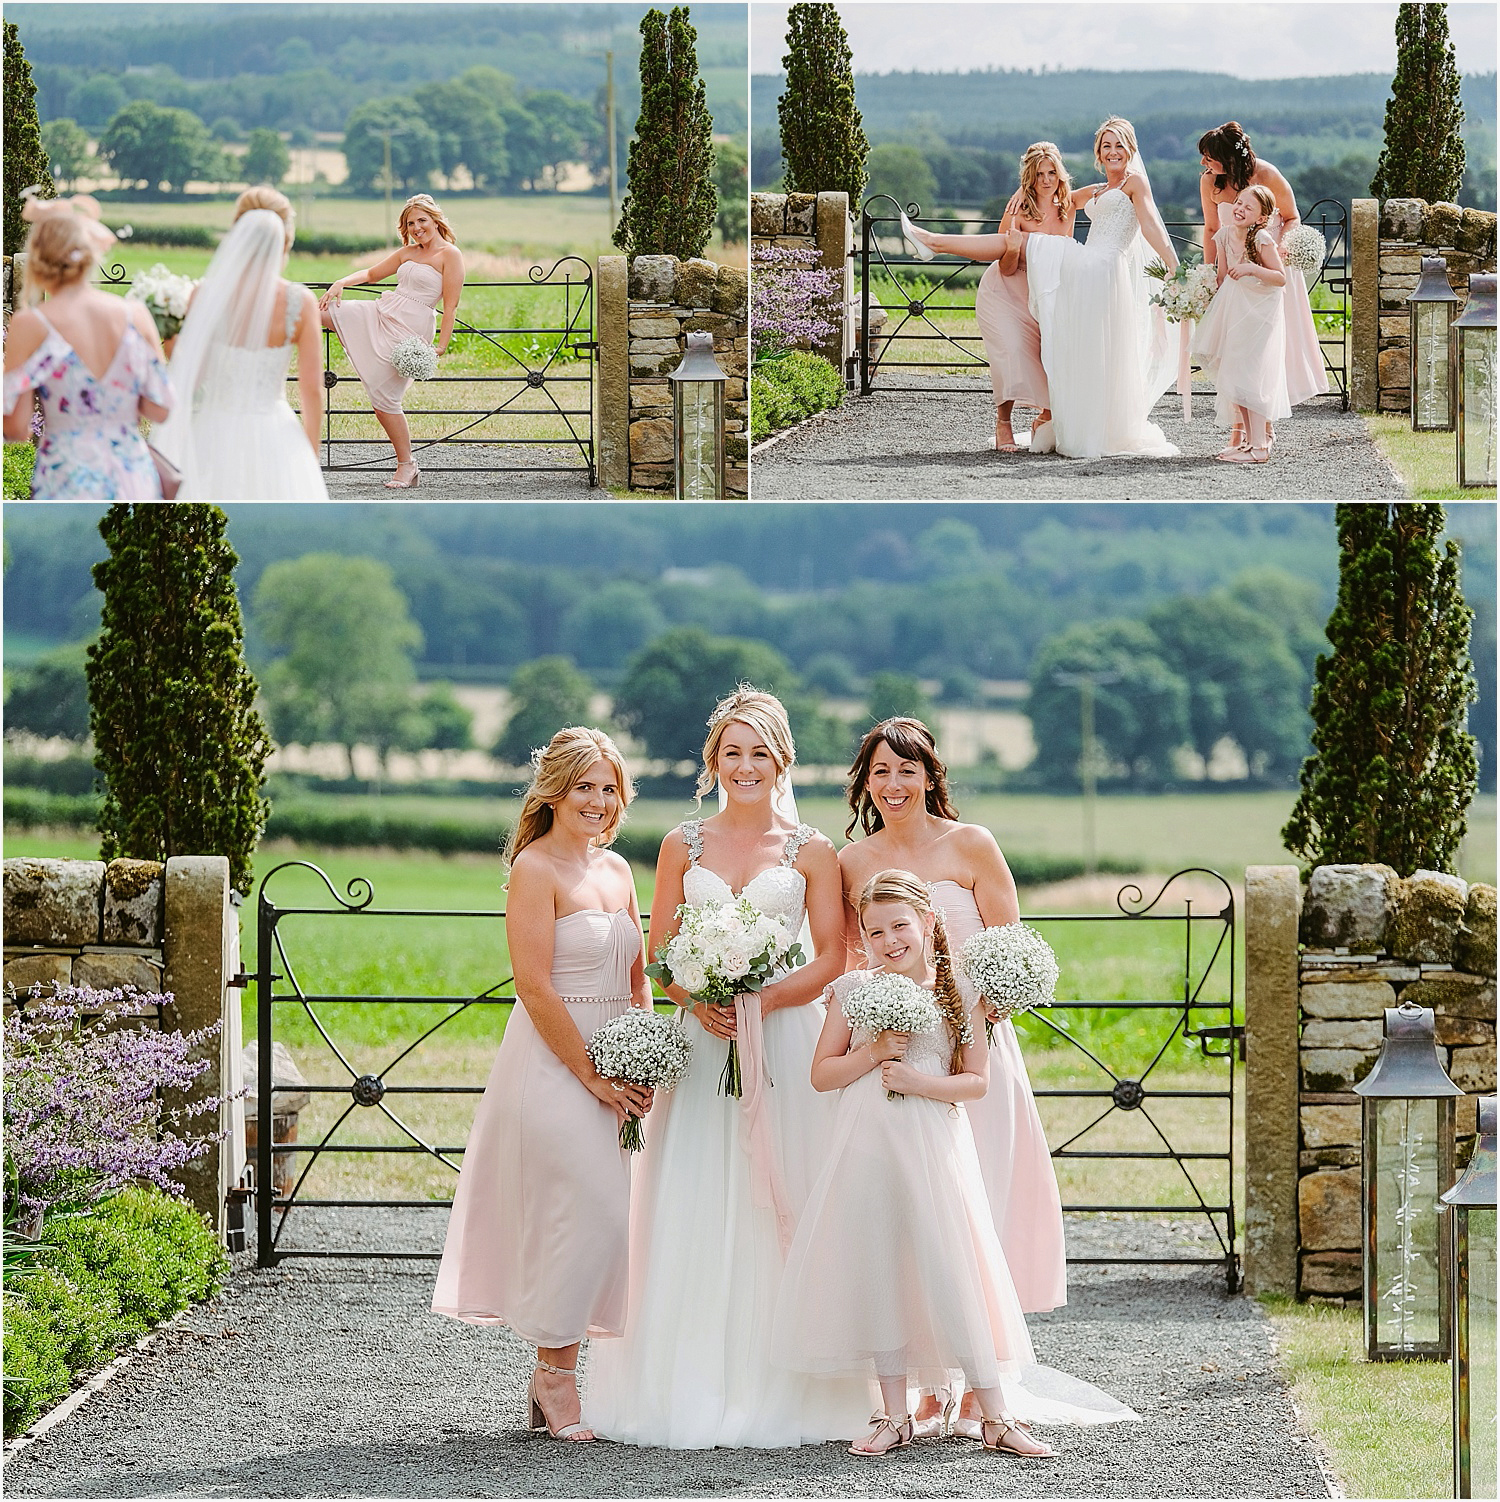 Wedding at Healey Barn - wedding photography by www.2tonephotography.co.uk 065.jpg